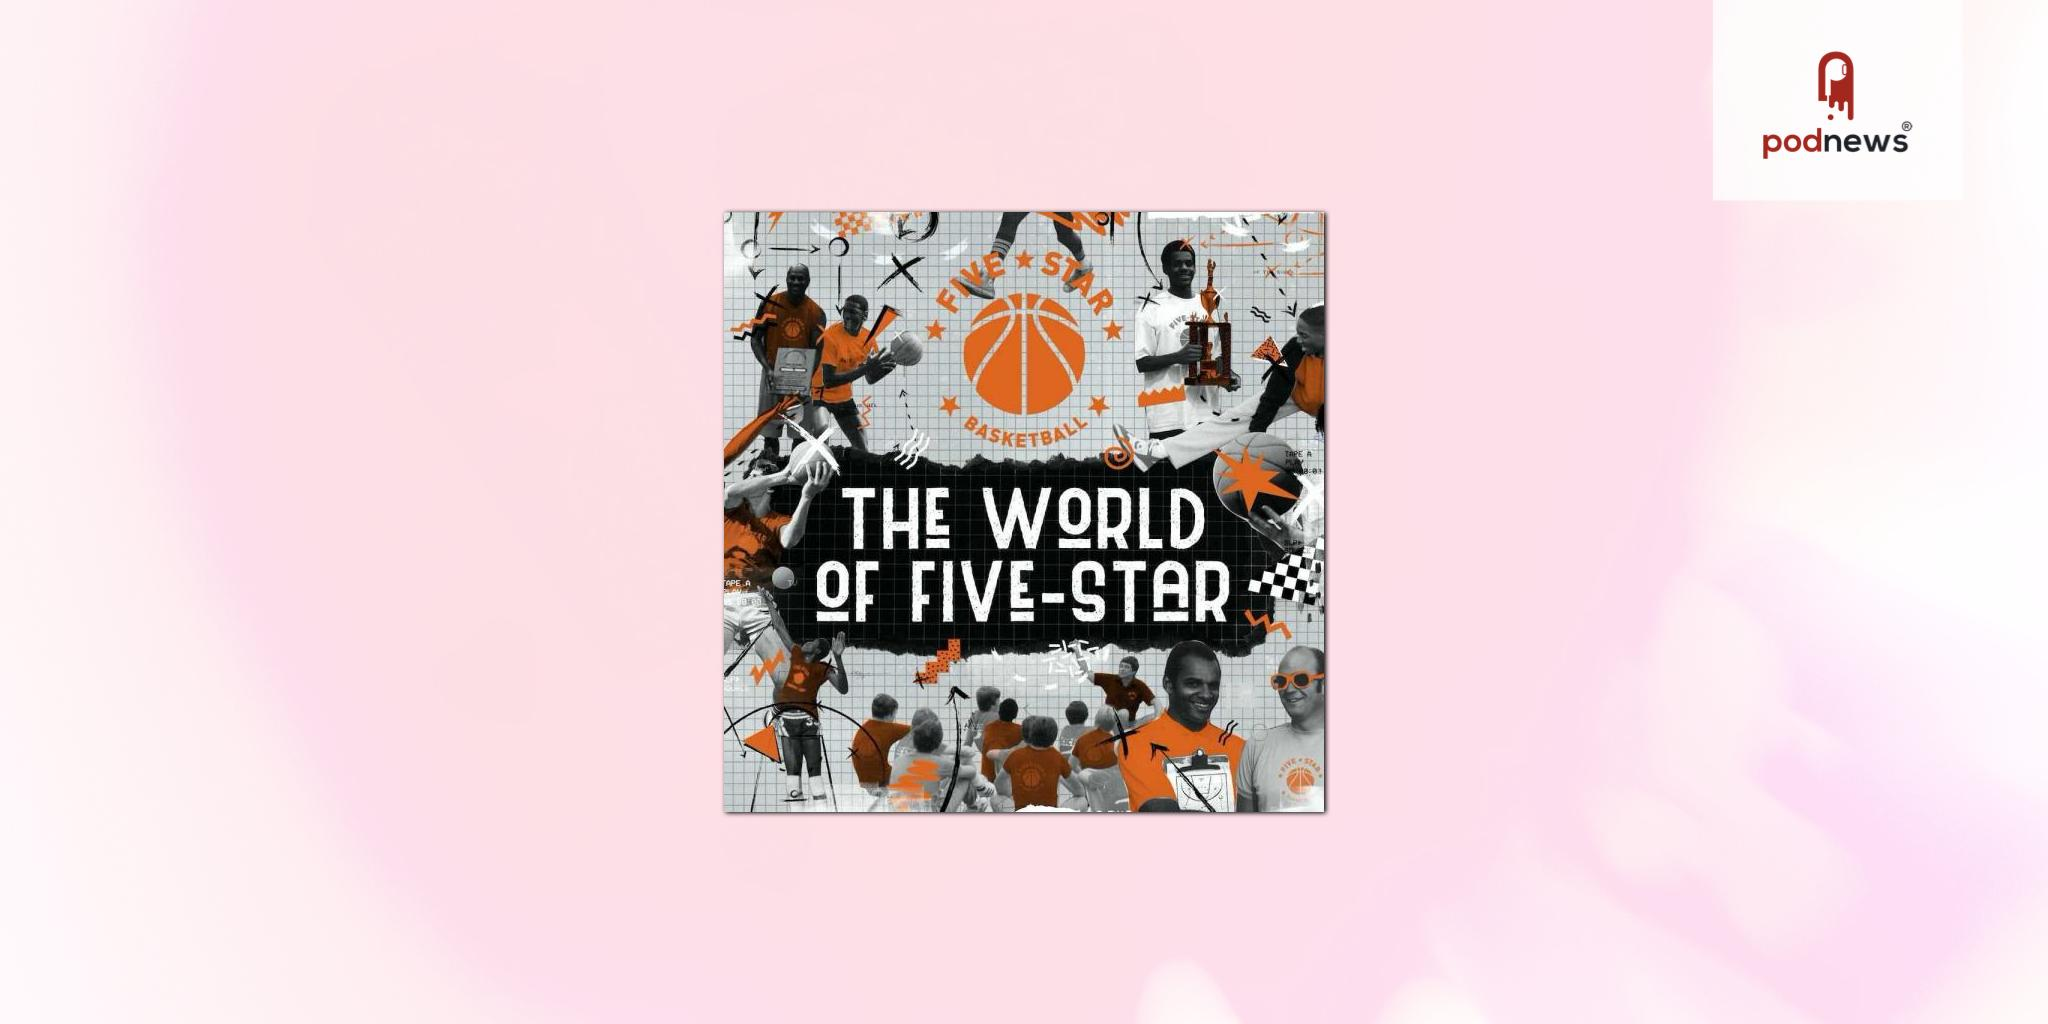 The World of Five-Star basketball podcast drops first teaser for series